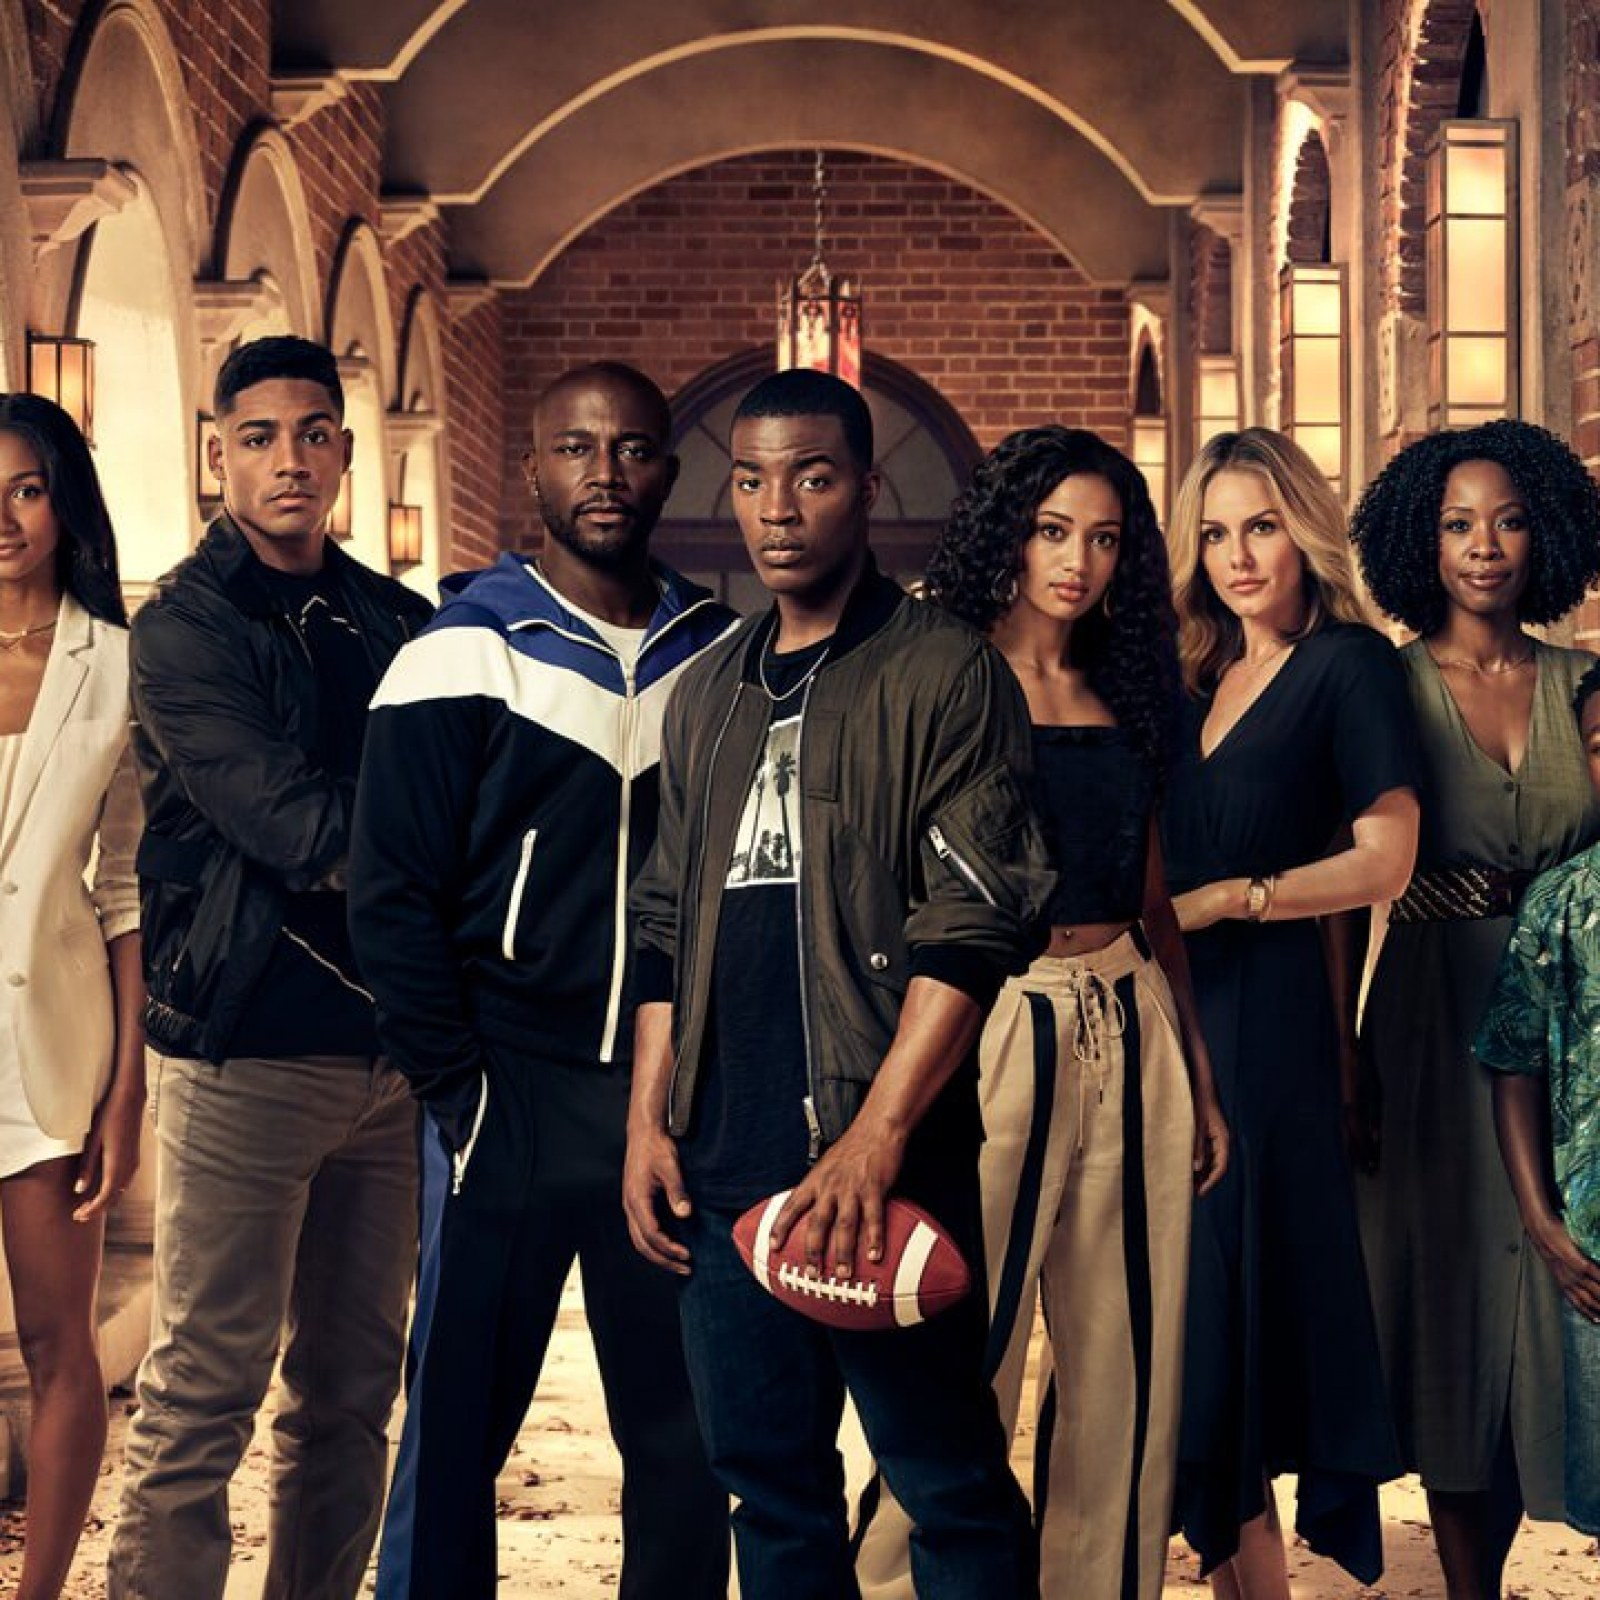 All American Season 4 Release Date Updates: Is There A New Season? When Is It Coming Out?